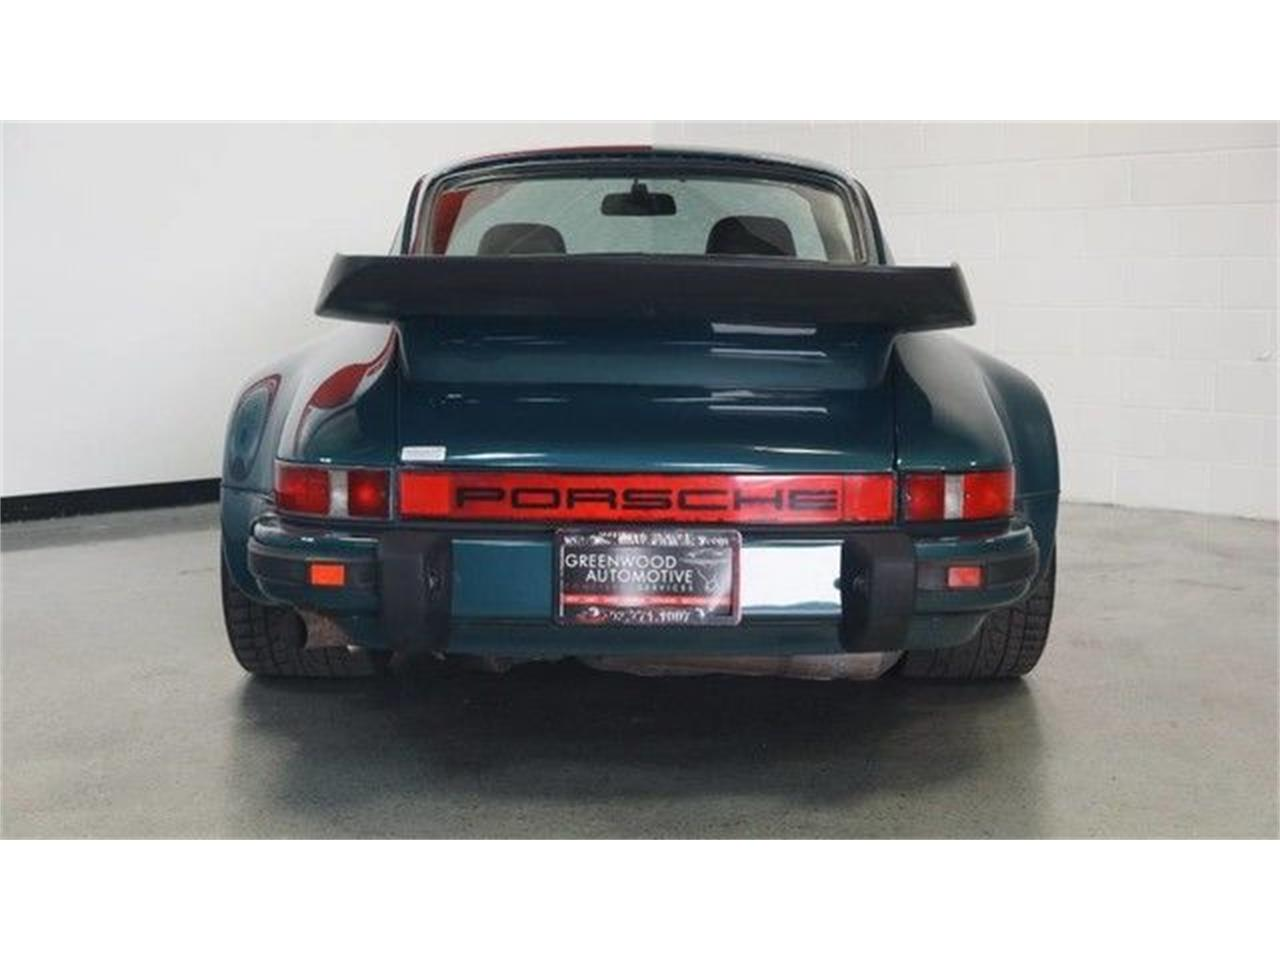 Large Picture of 1979 930 Turbo located in Greenwood Village Colorado - $79,988.00 Offered by Greenwood Automotive - PUD7